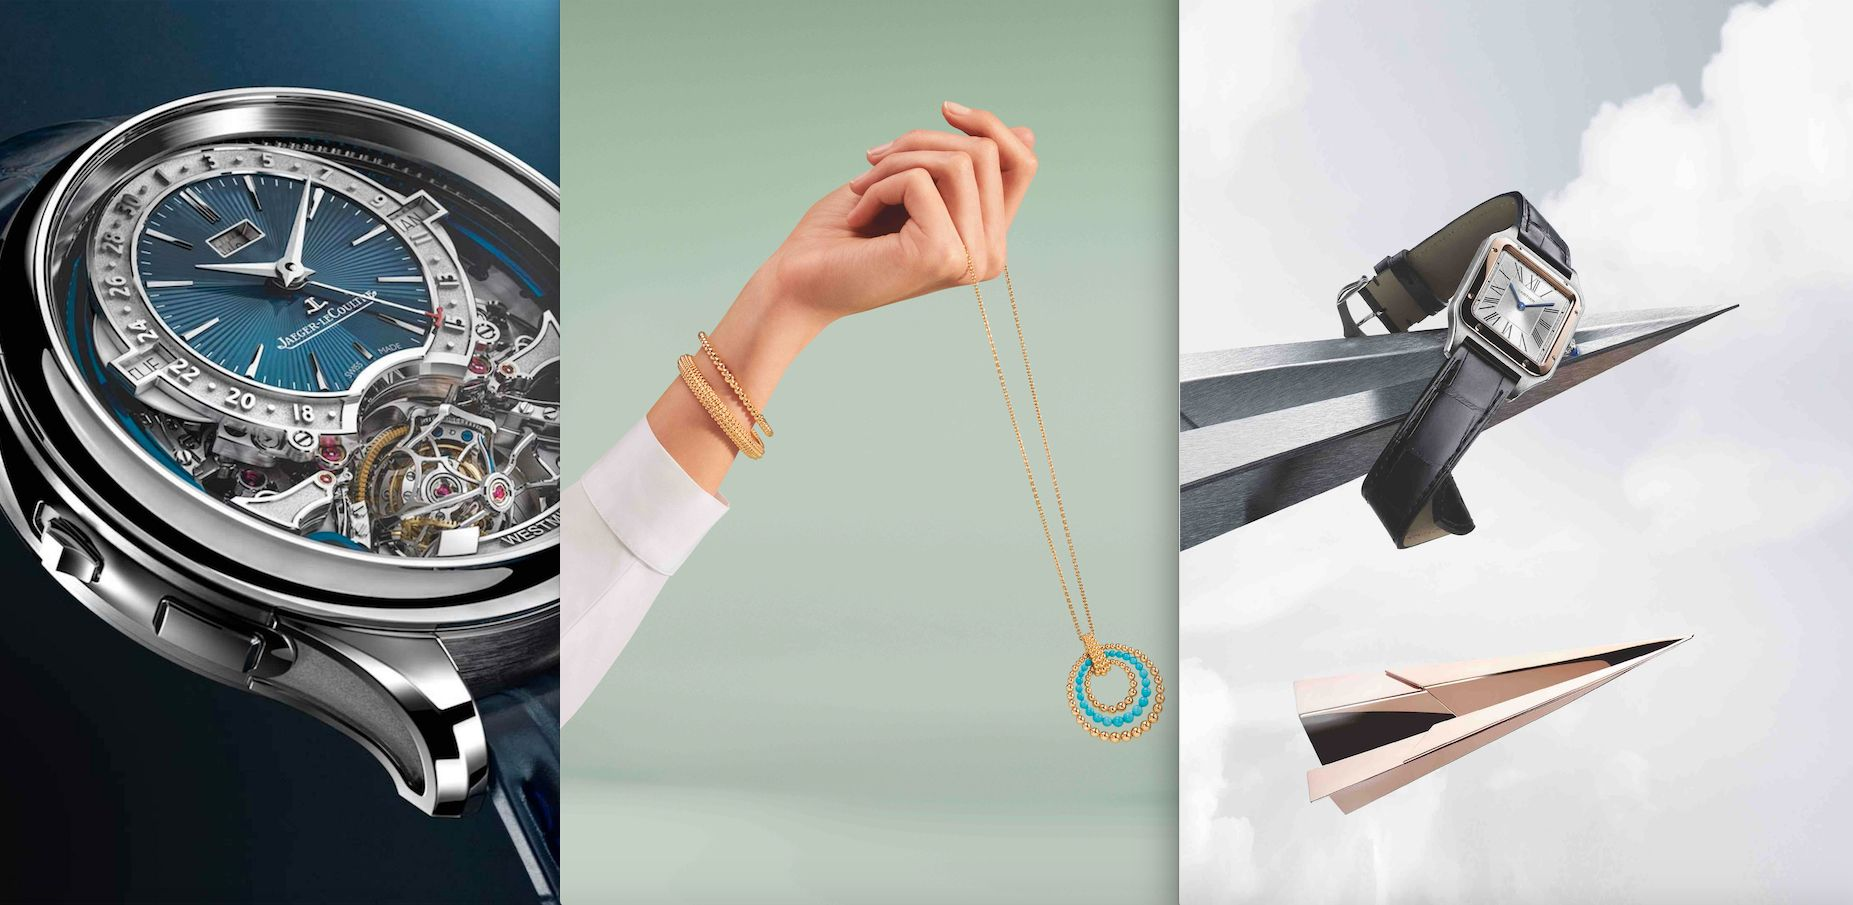 The Latest Watch And Jewellery Launches To Look Out For During Ion Orchard's 10th Anniversary: Cartier, Van Cleef & Arpels And Jaeger-LeCoultre